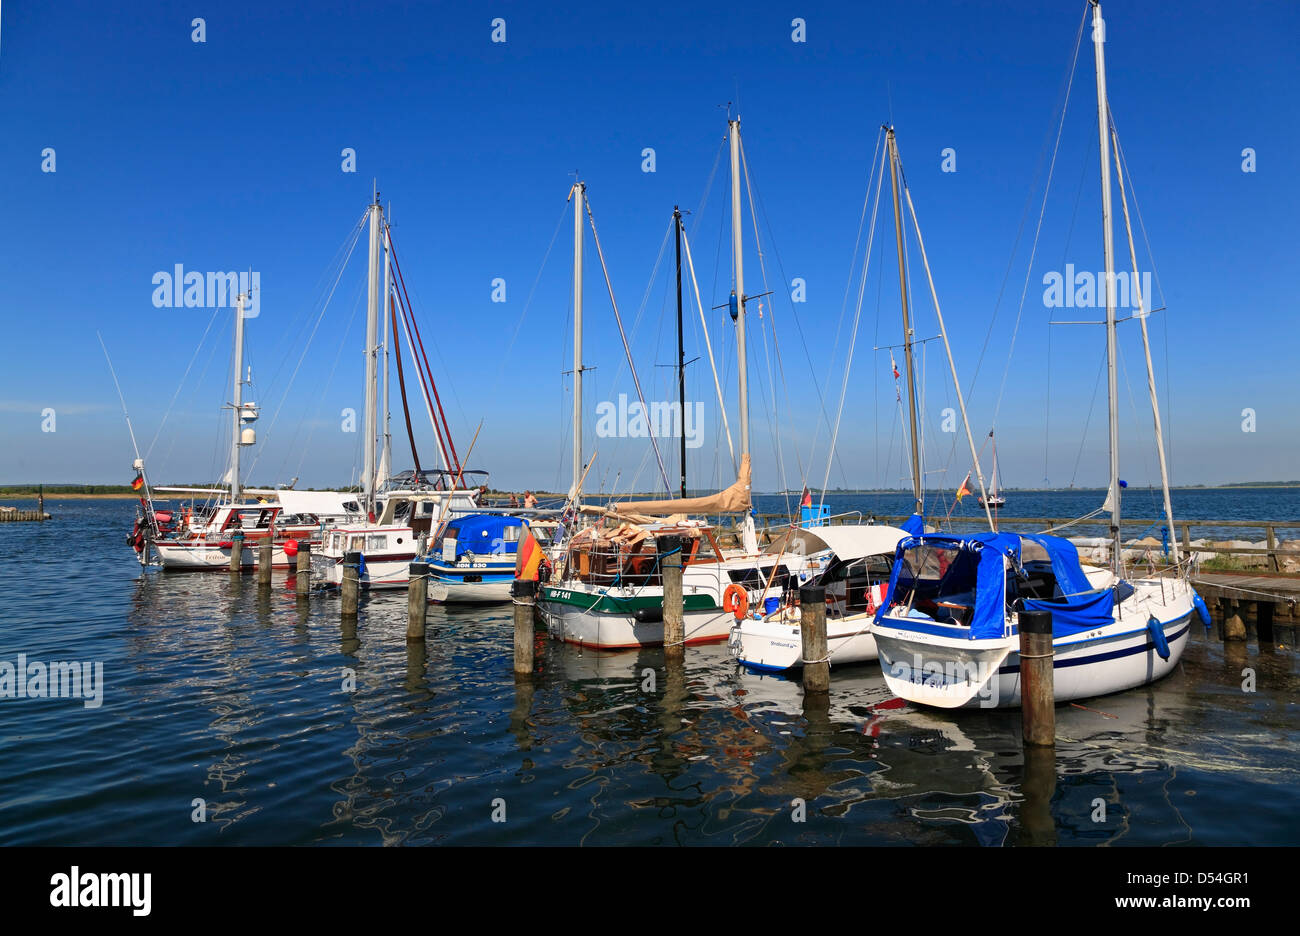 Insel Hiddensee, Neuendorf, sailing boats in the harbor, Mecklenburg Western Pomerania, Germany - Stock Image